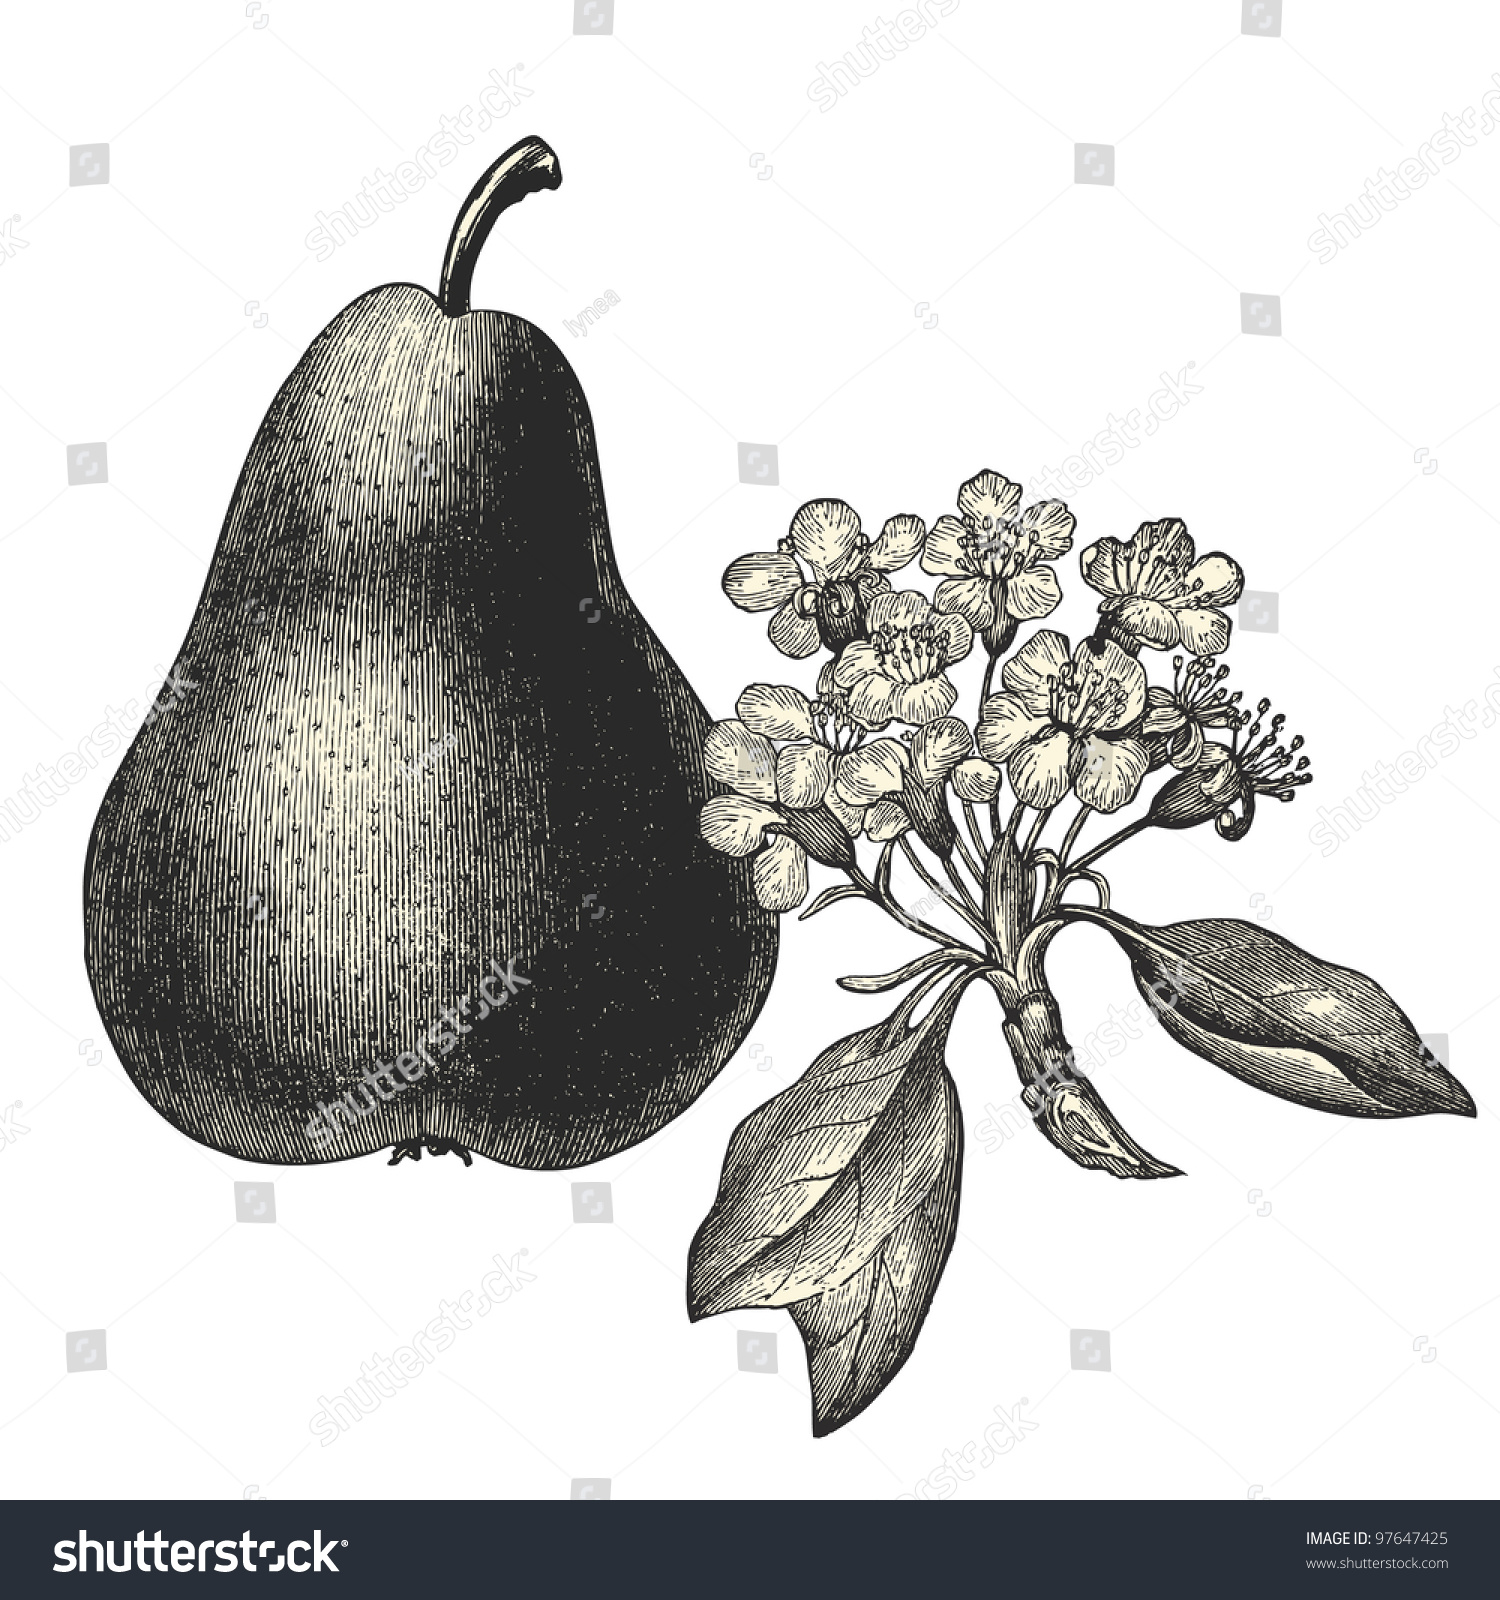 Think, that The vintage pear apologise